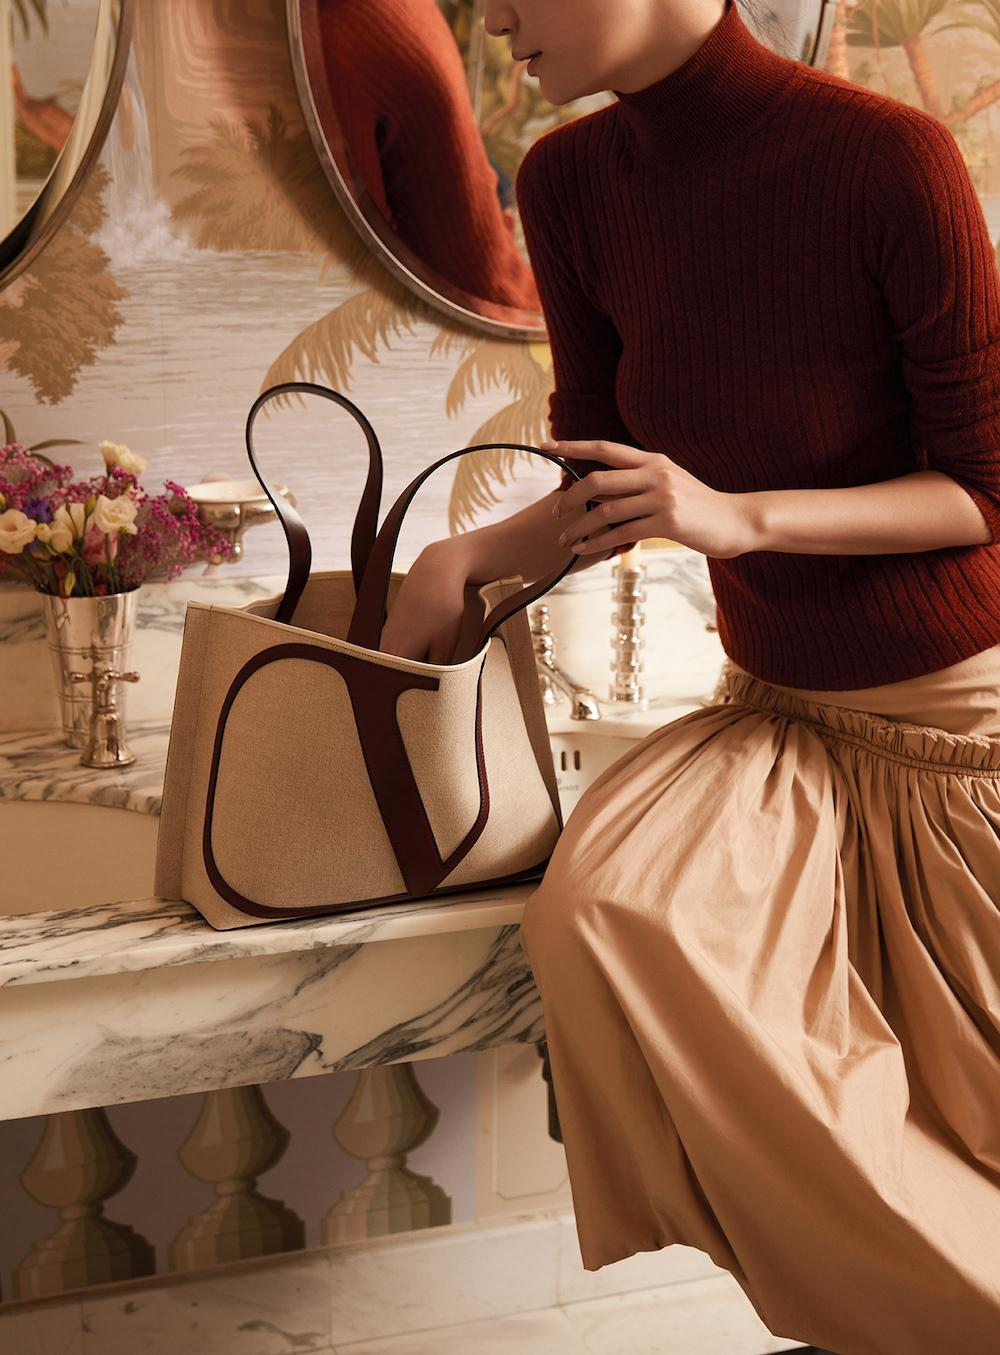 The Valentino handbag is ideal for those who like strict straight lines.